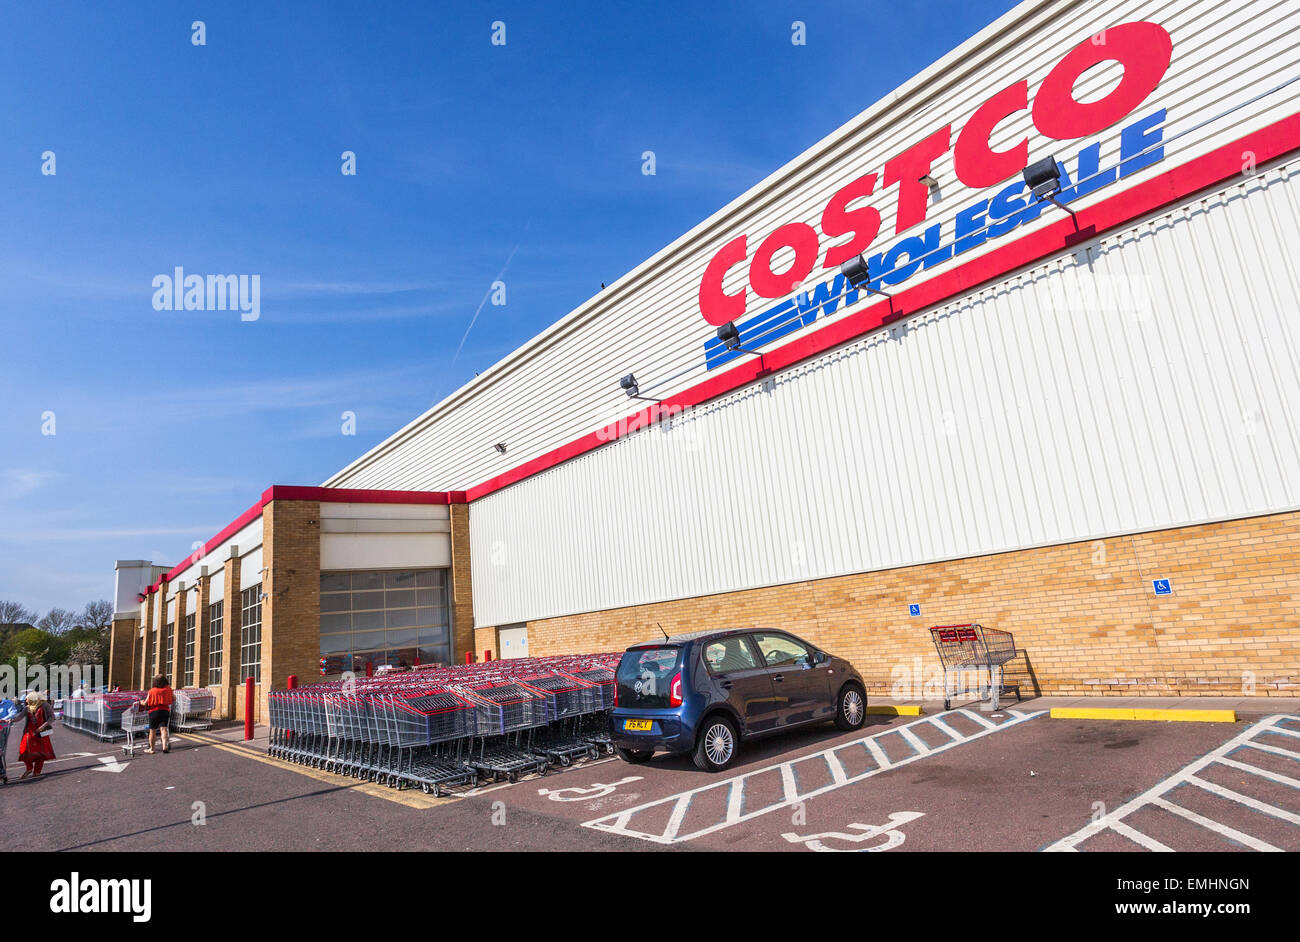 Costco is an membership-only warehouse club that provides a wide selection of merchandise, from electronics and clothing to fresh produce and auto care, plus specialty departments and member services including optical, pharmacy, photo center, travel, tire center, and gas station/5(K).